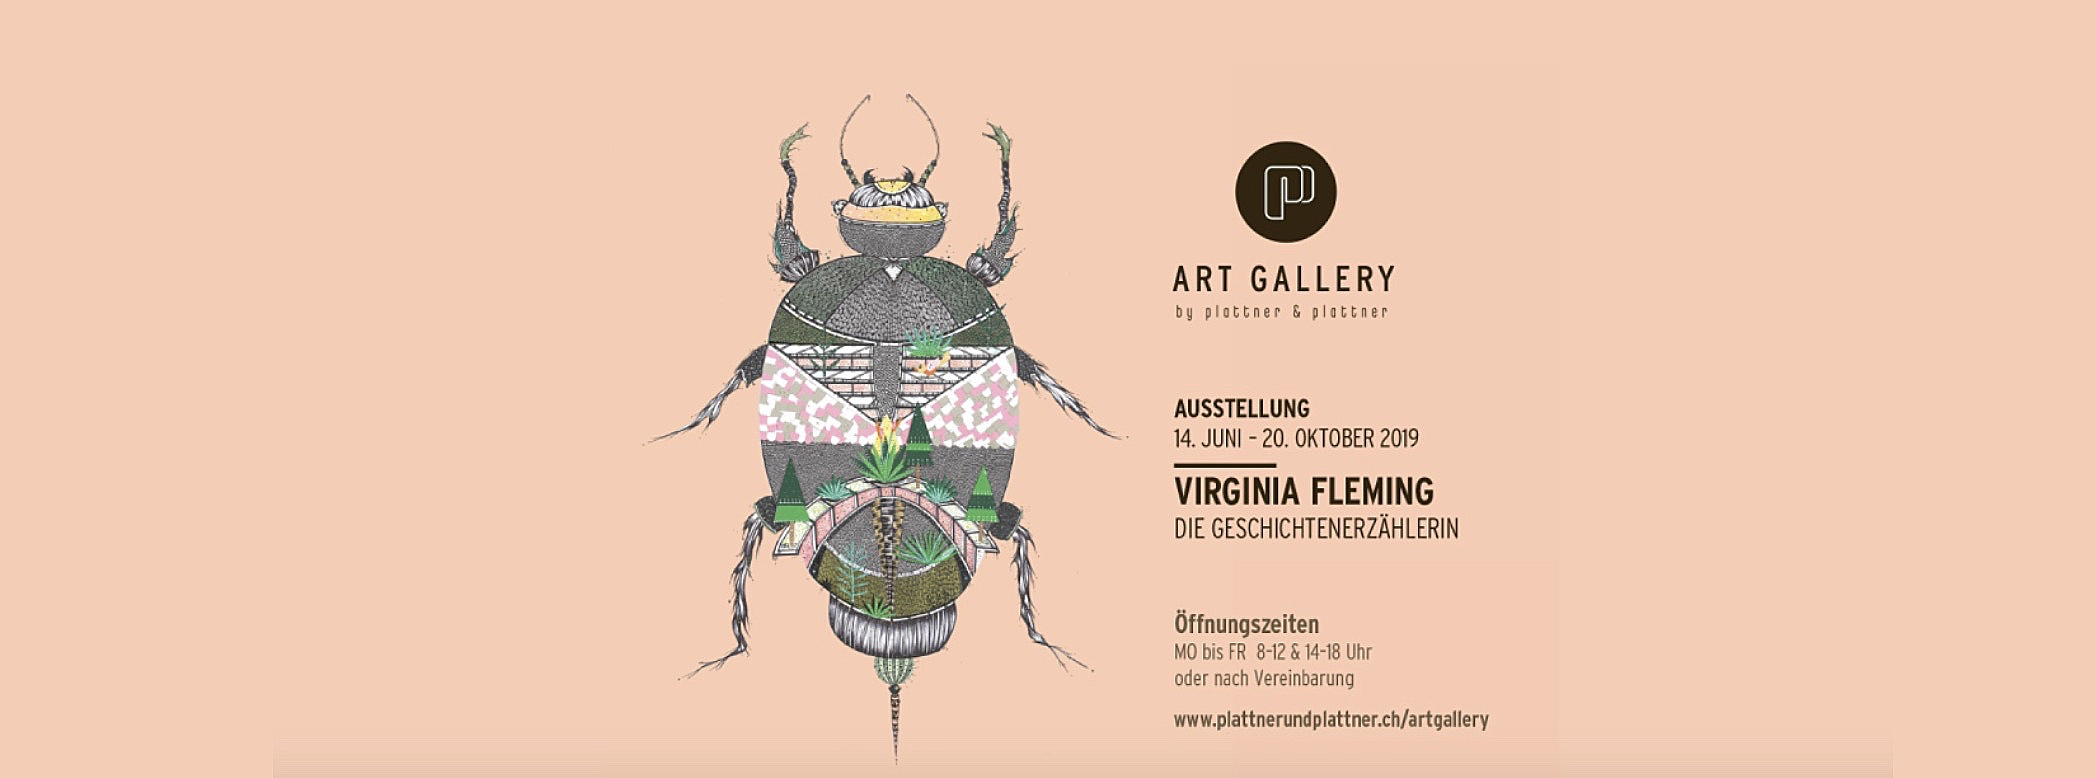 Summer Show - Virginia Fleming is holding her first Solo Art Exhibition at the Plattner & Plattner Art Gallery based in Pontresina. Step inside a colourful, magical world and set your imagination free!